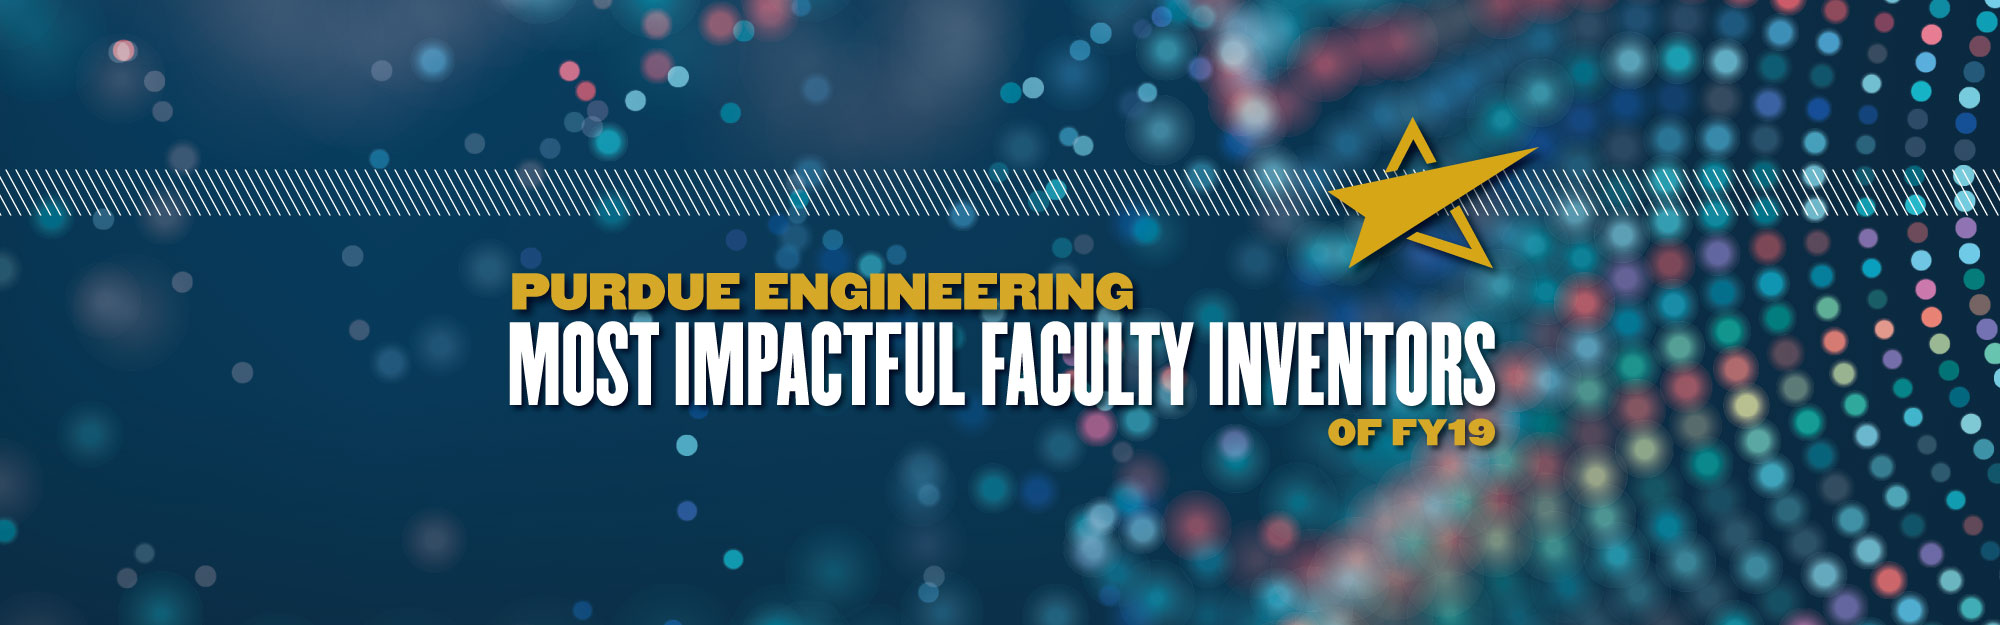 Purdue Engineering Most Impactful Faculty Inventors of FY19